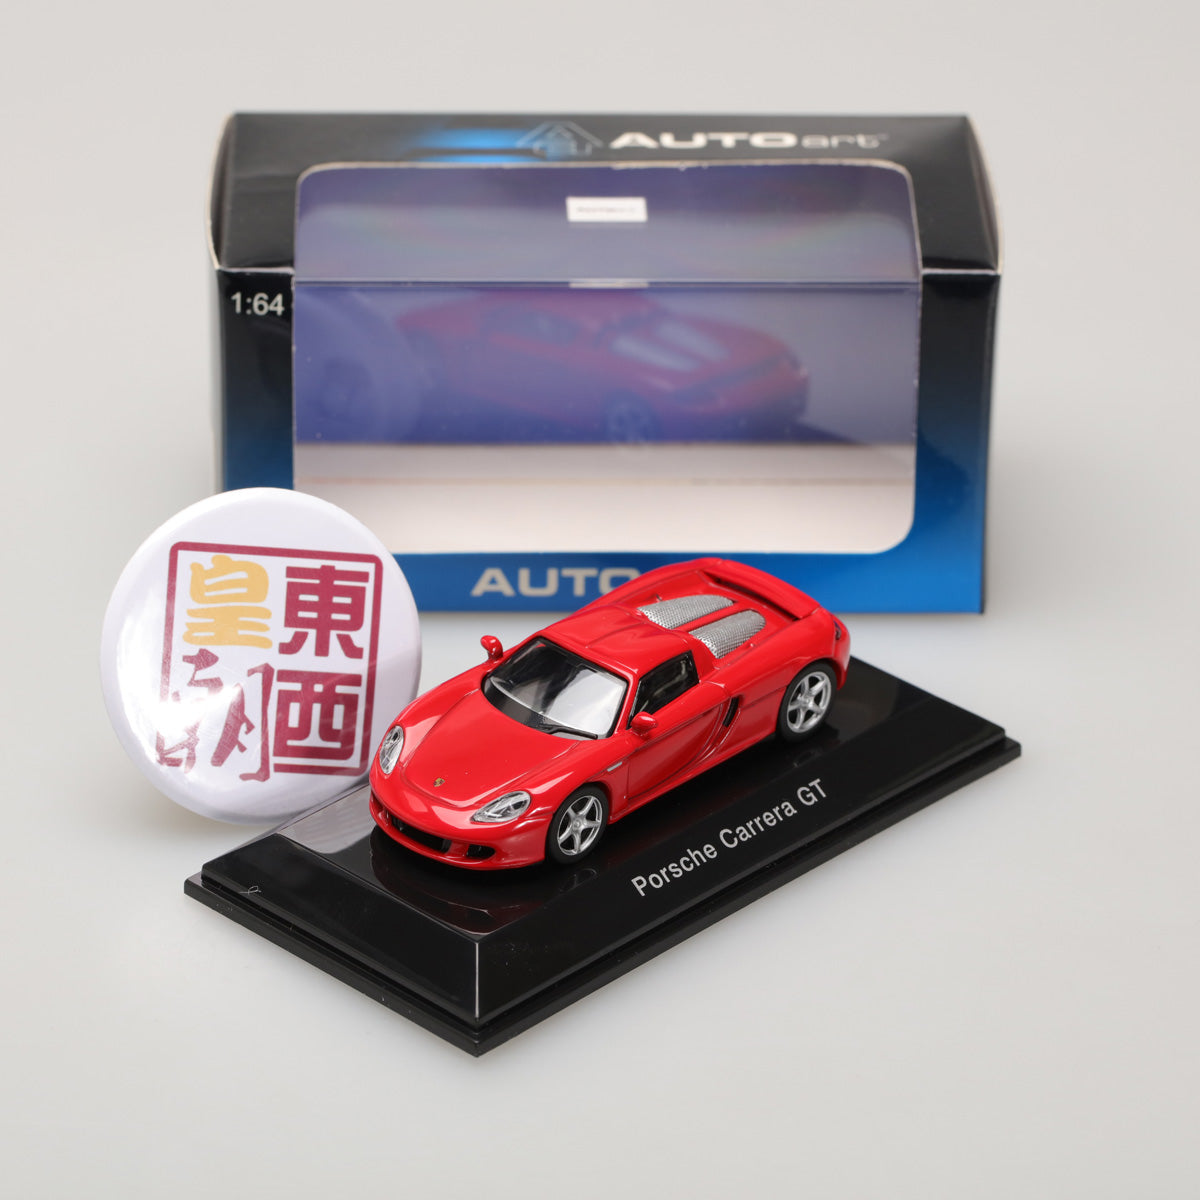 AUTOART 1:64 PORSCHE CARRERA GT RED 20633